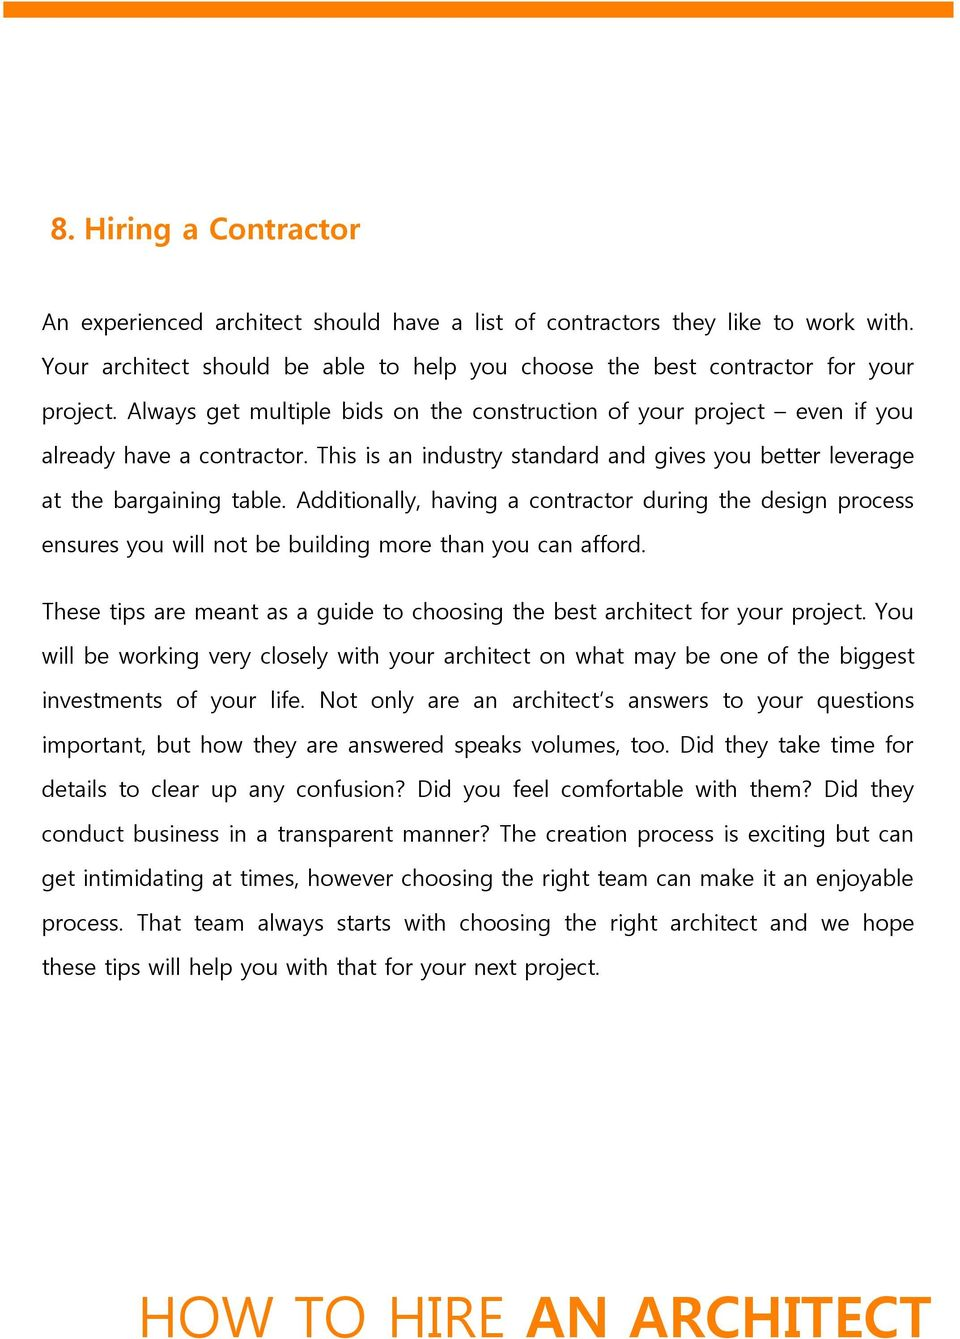 Additionally, having a contractor during the design process ensures you will not be building more than you can afford. These tips are meant as a guide to choosing the best architect for your project.